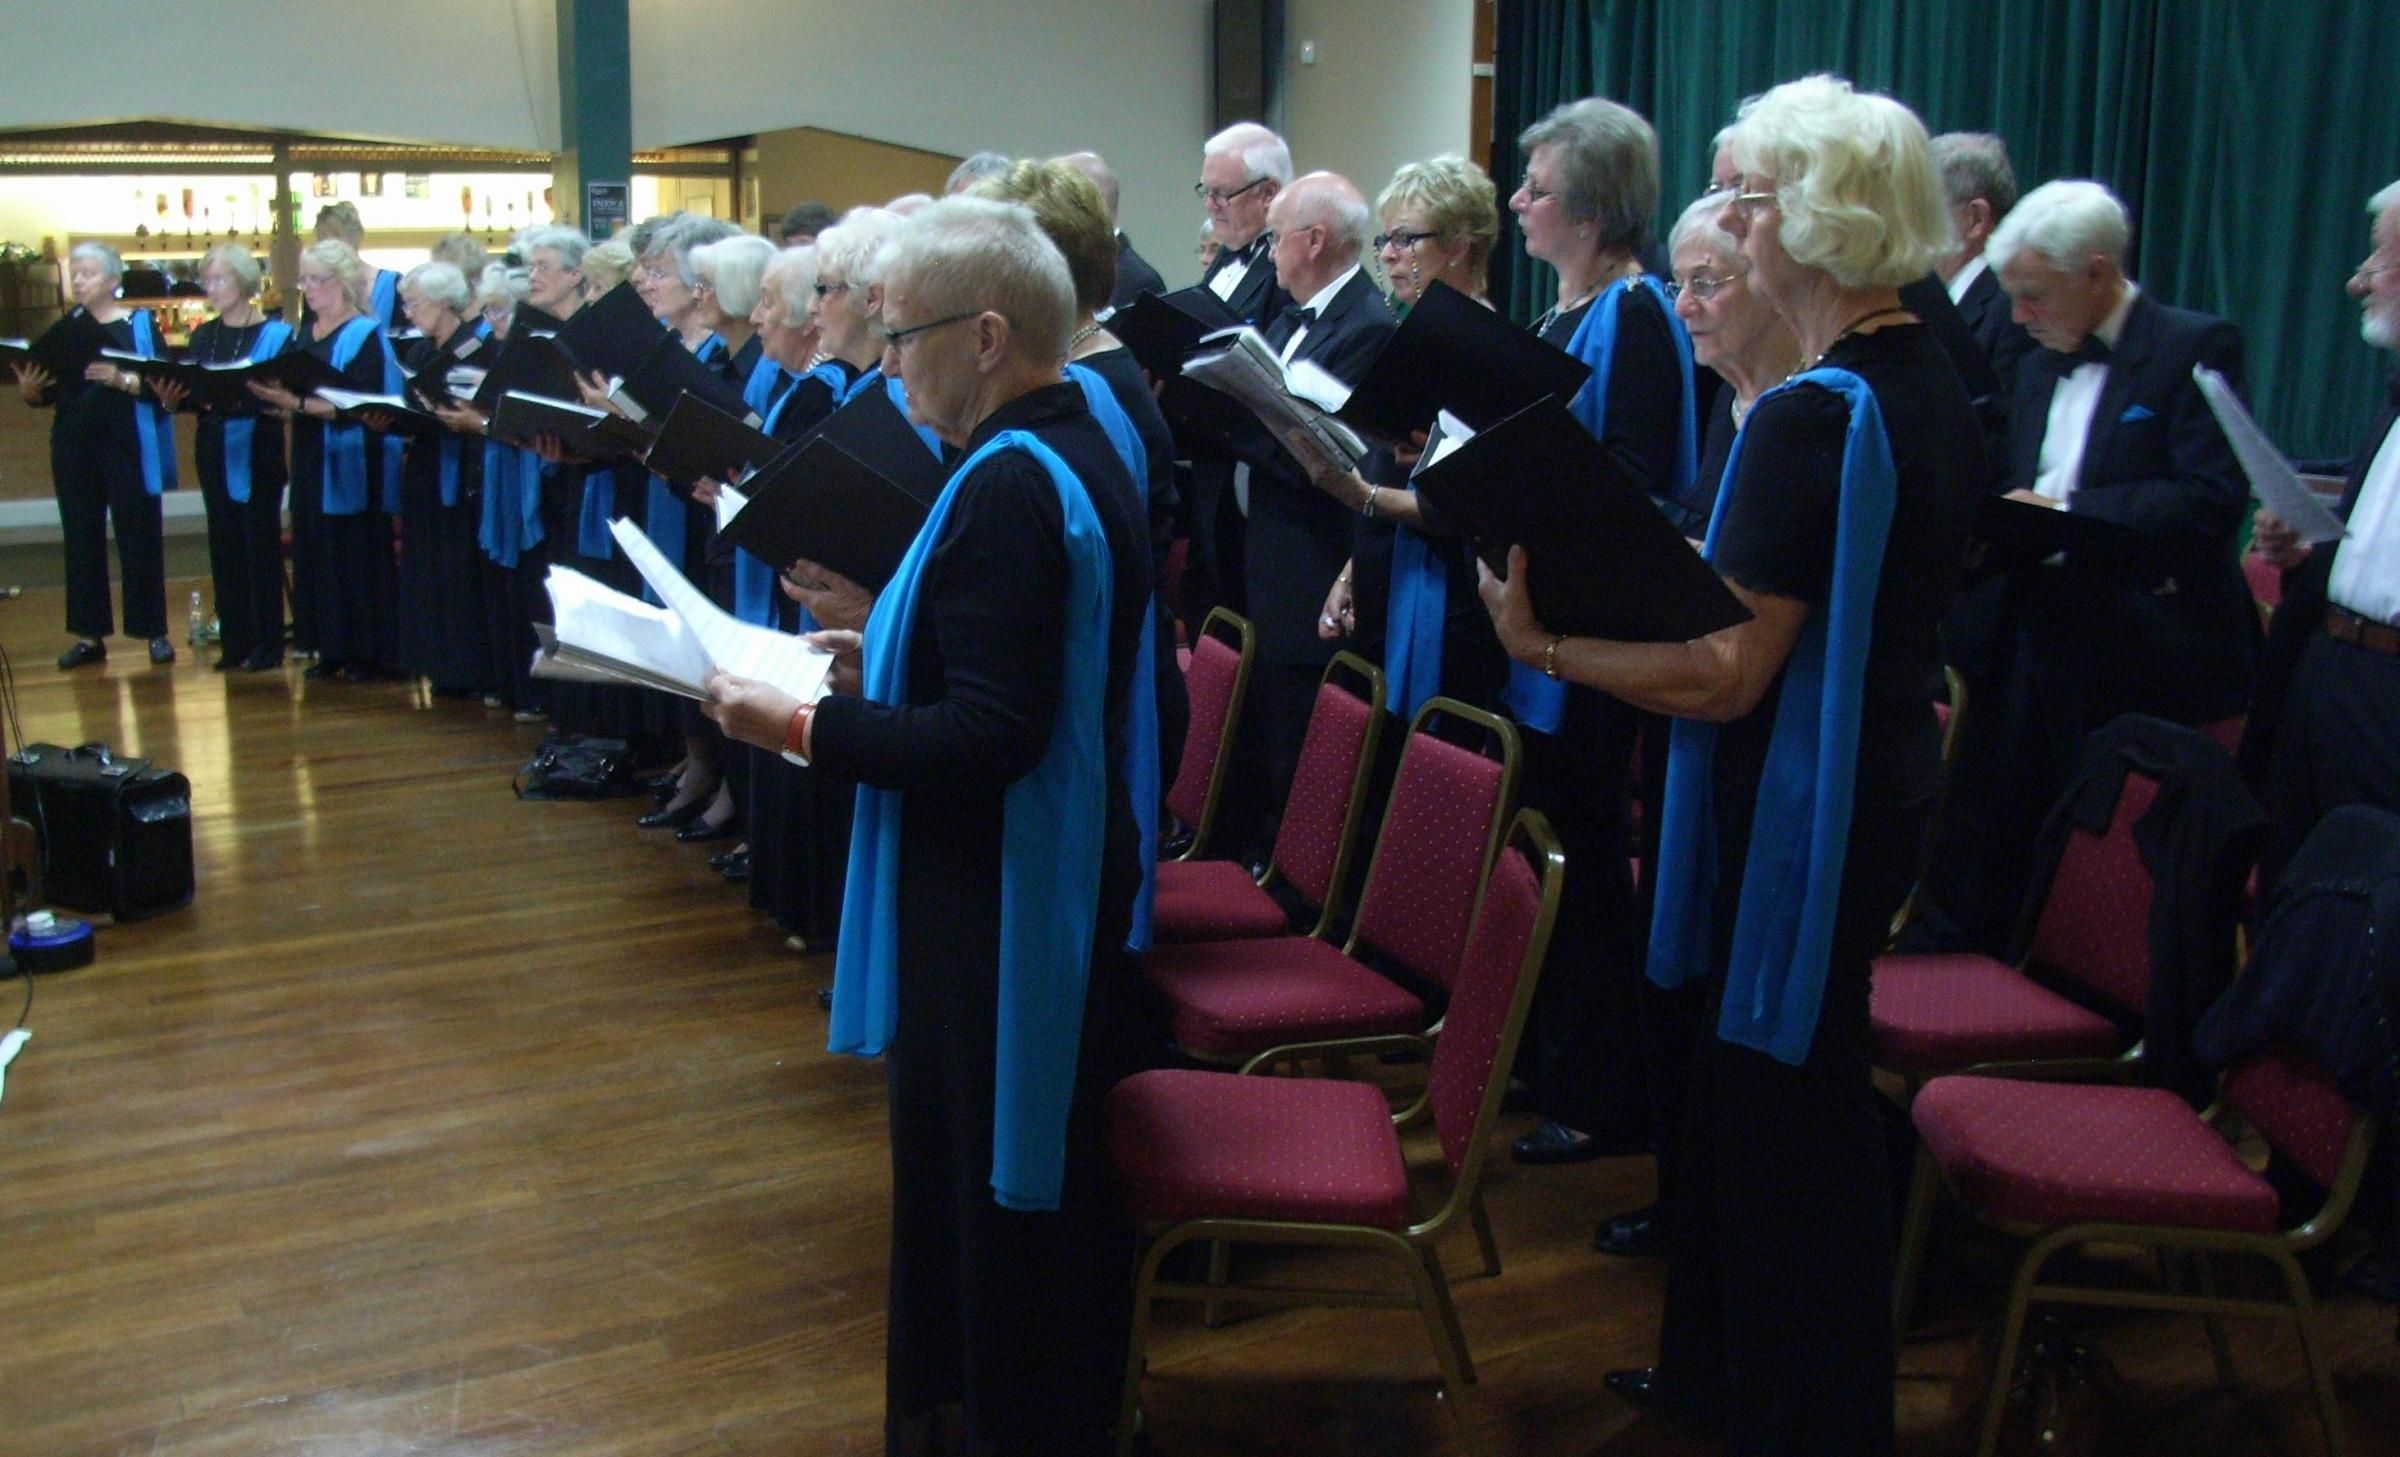 Welcome to Spring with the June Baker Singers